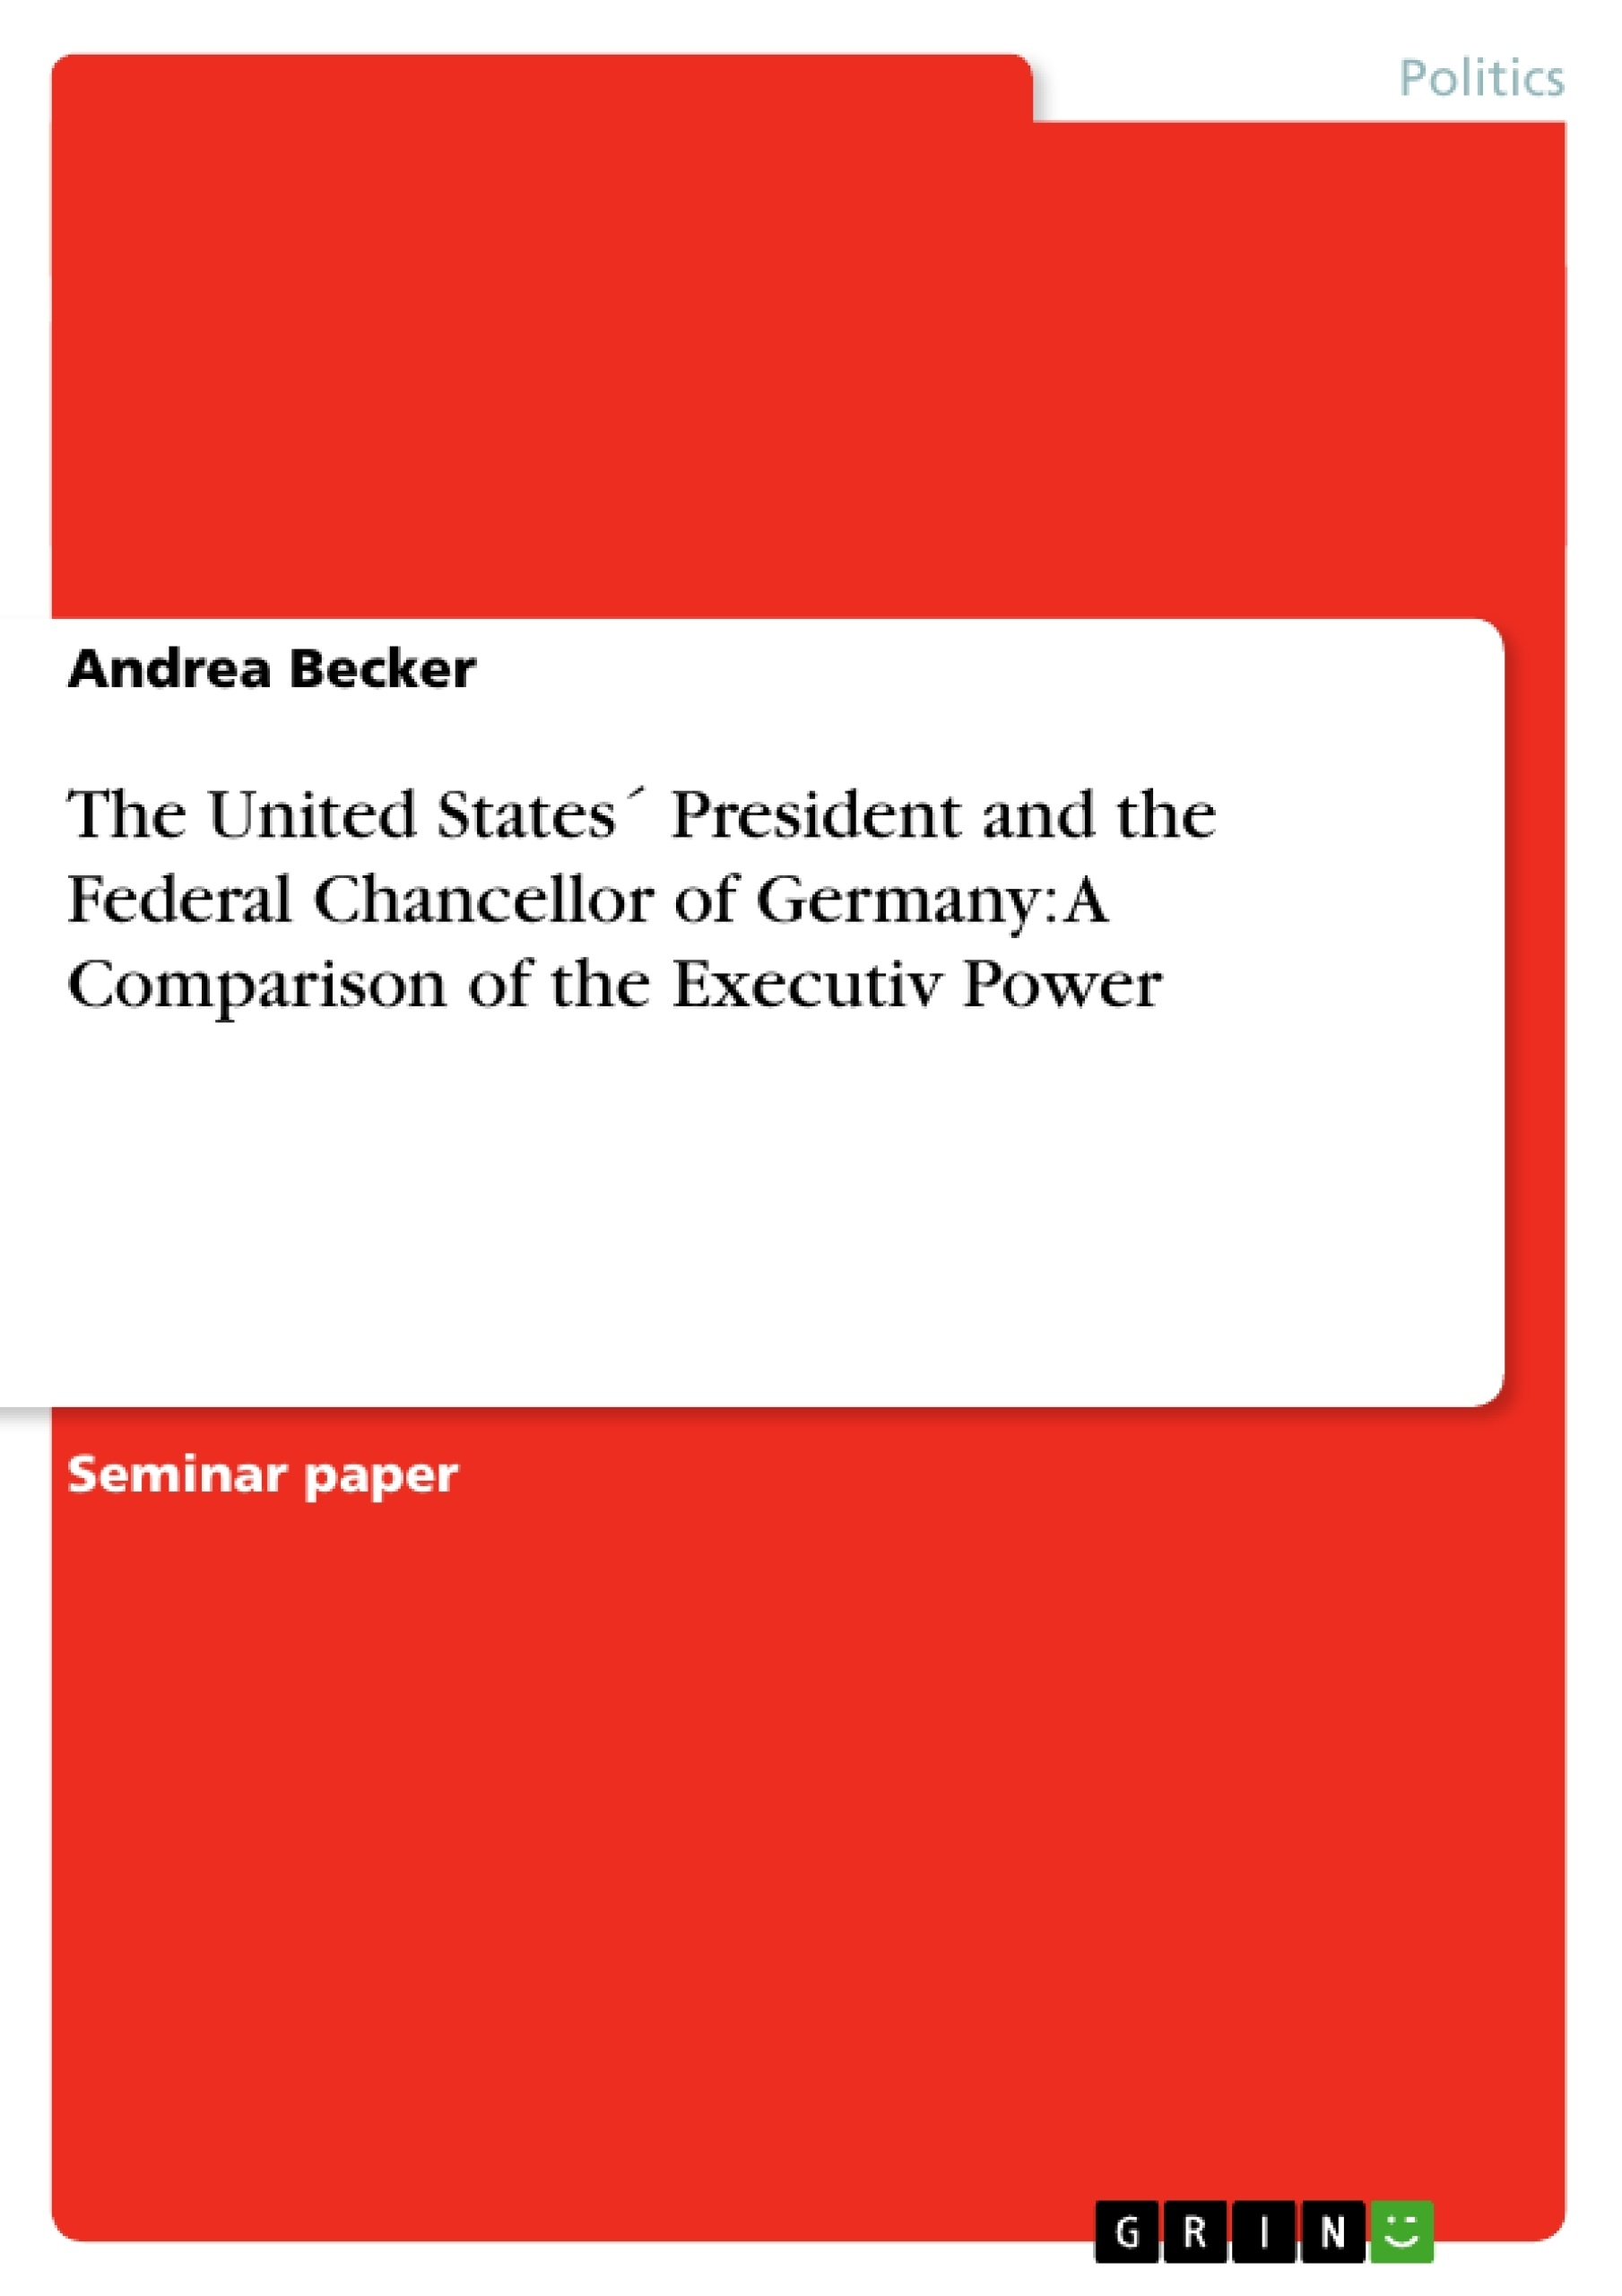 Title: The United States´ President and the Federal Chancellor of Germany: A Comparison of the Executiv Power